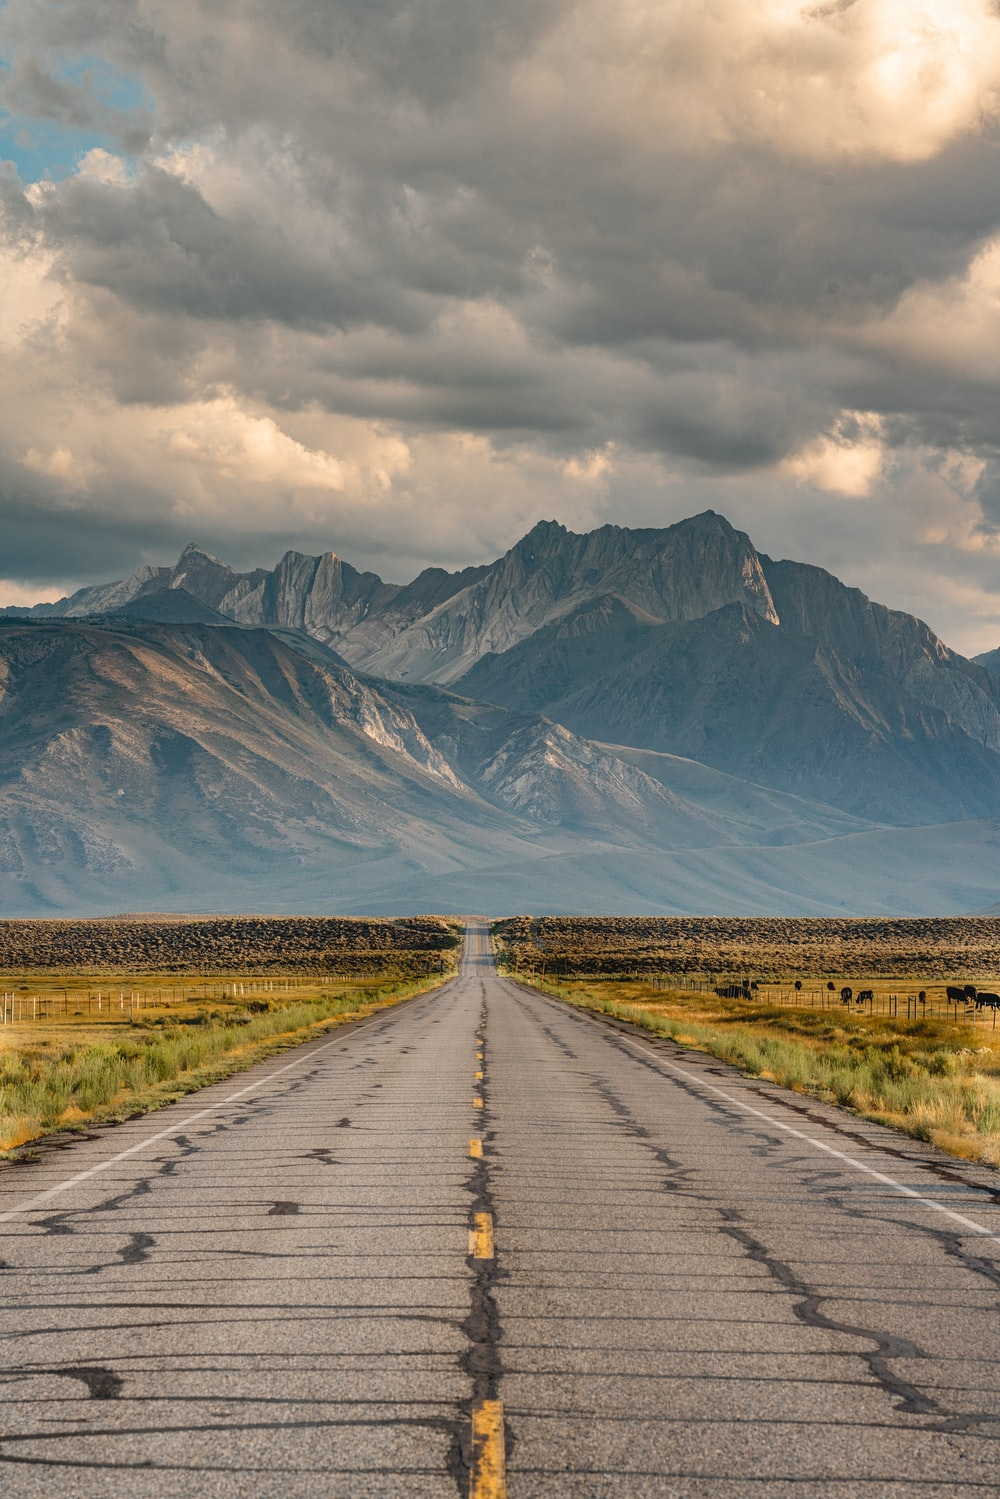 gray concrete road between green grass field near mountain under white clouds during daytime